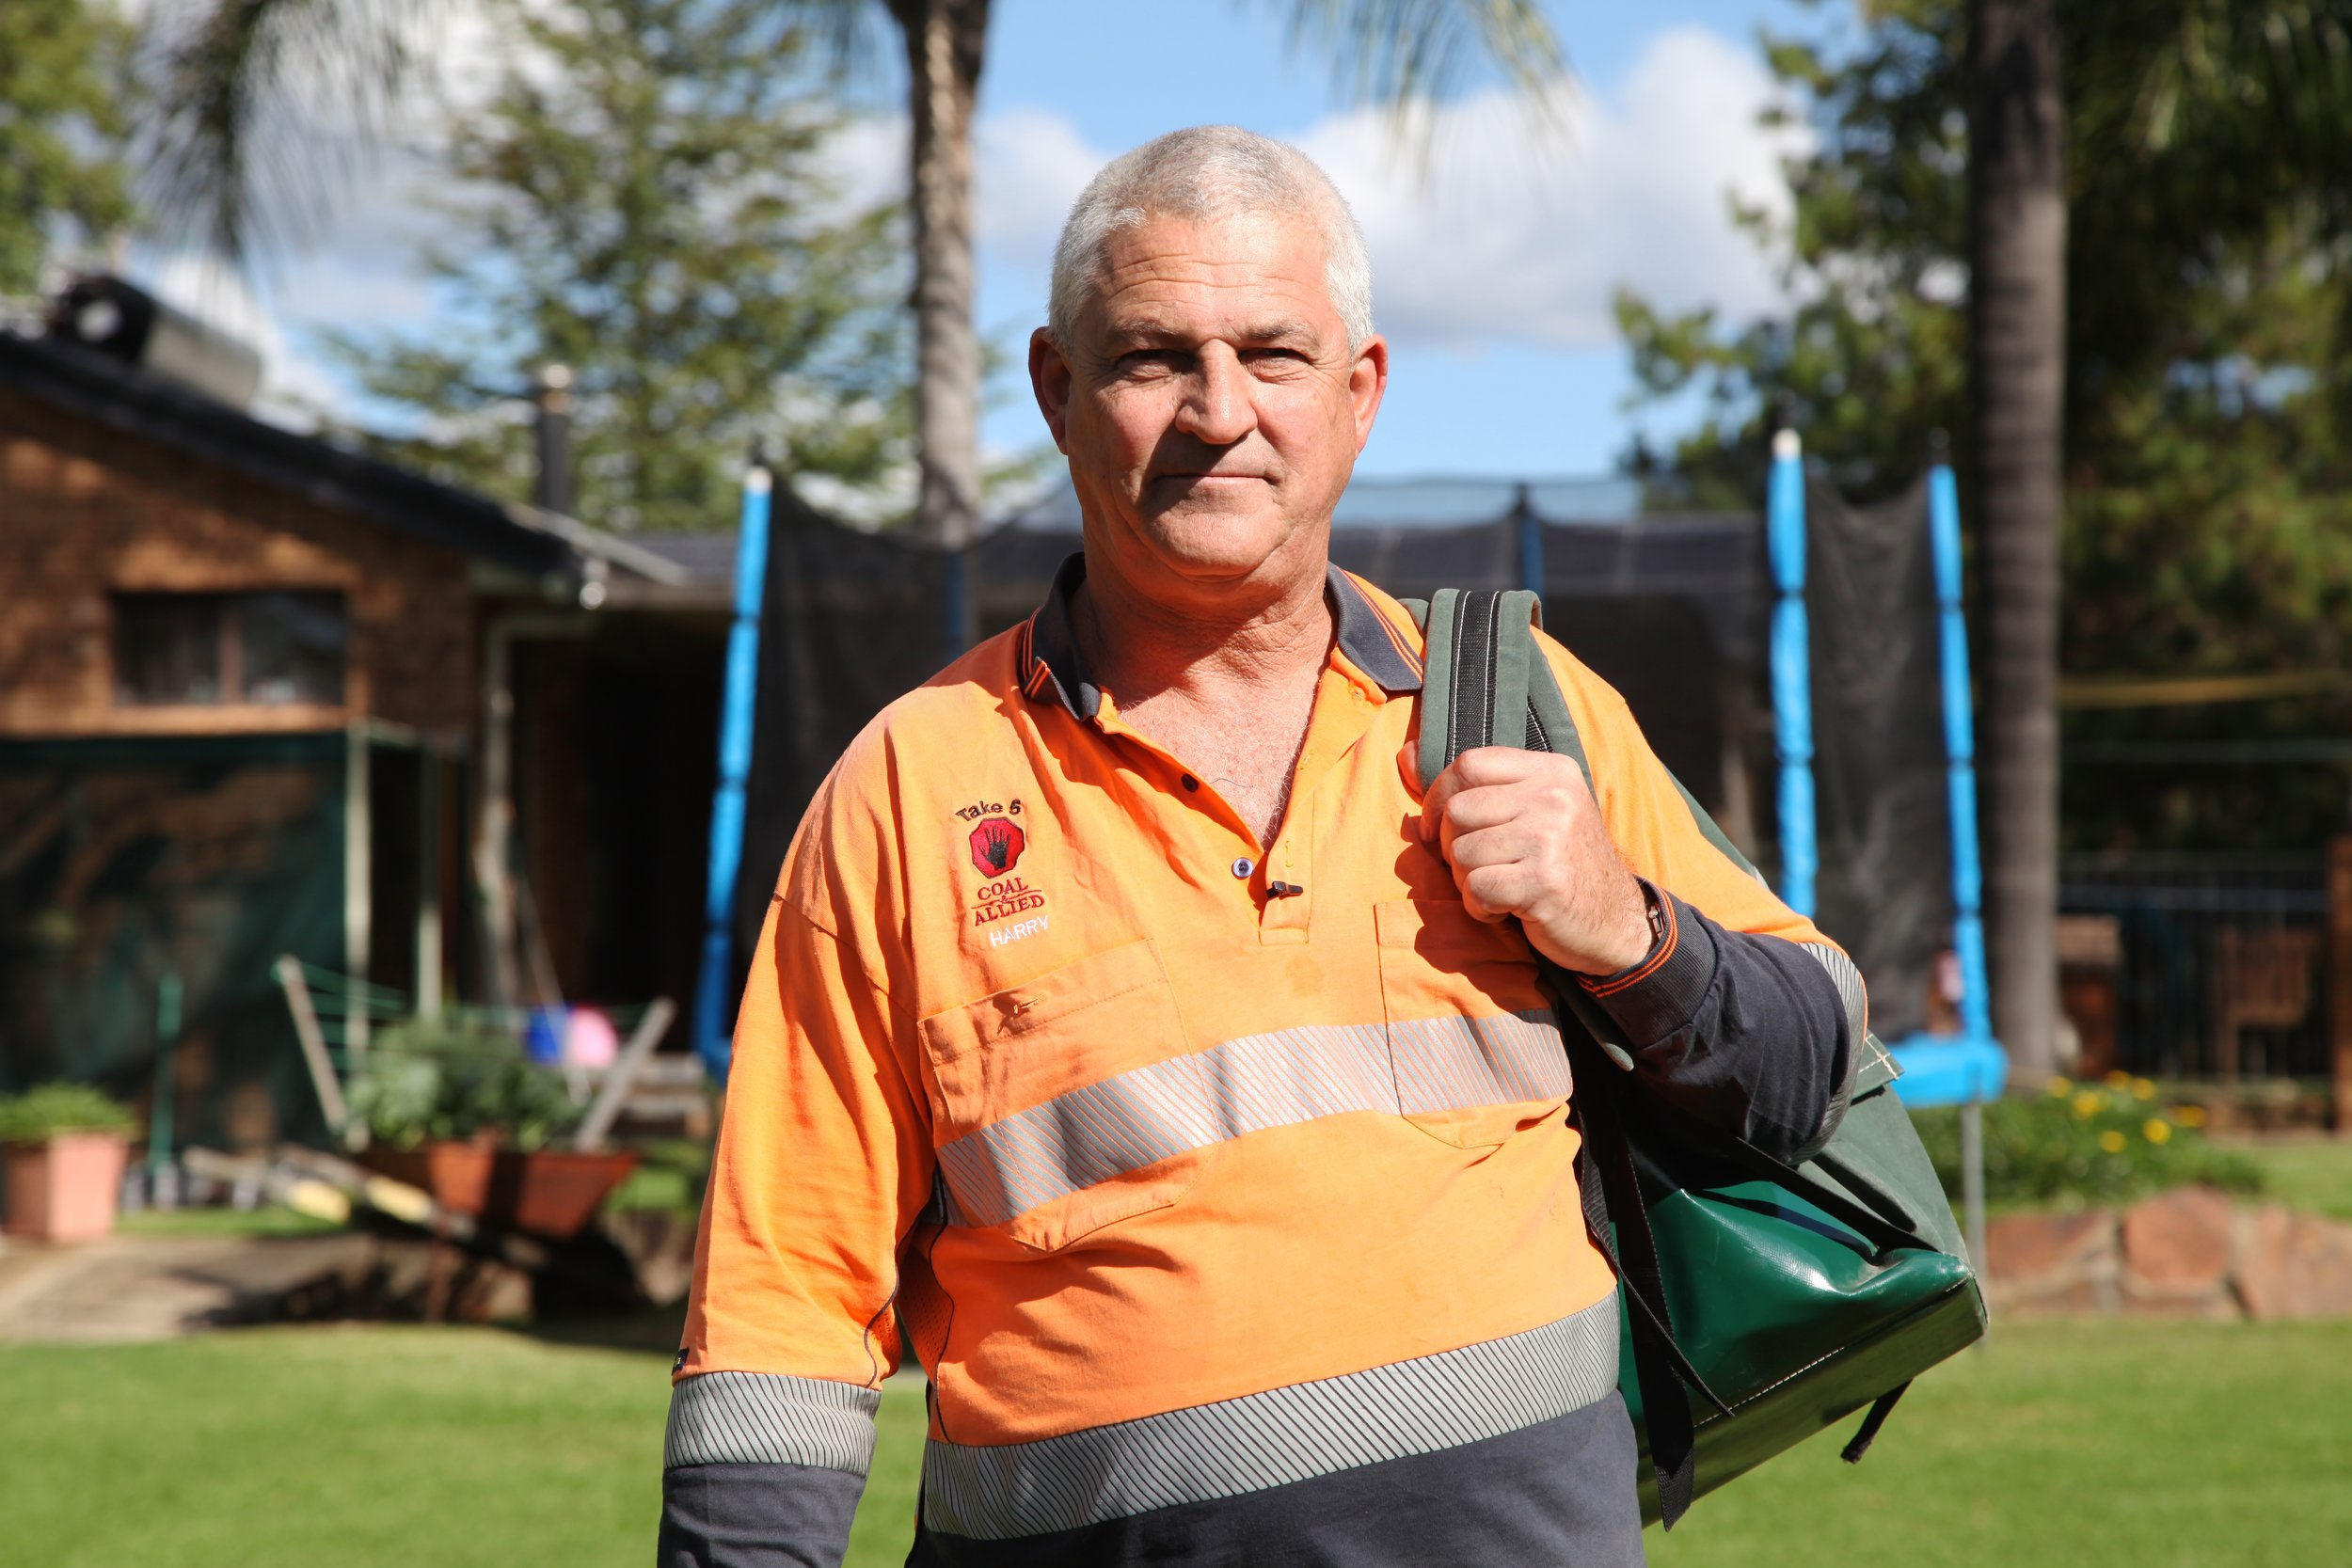 Paul Harris is another Bulga local who has spoken out against the proposed expansion of the mine. For Paul, it's a particularly pointed quandary.